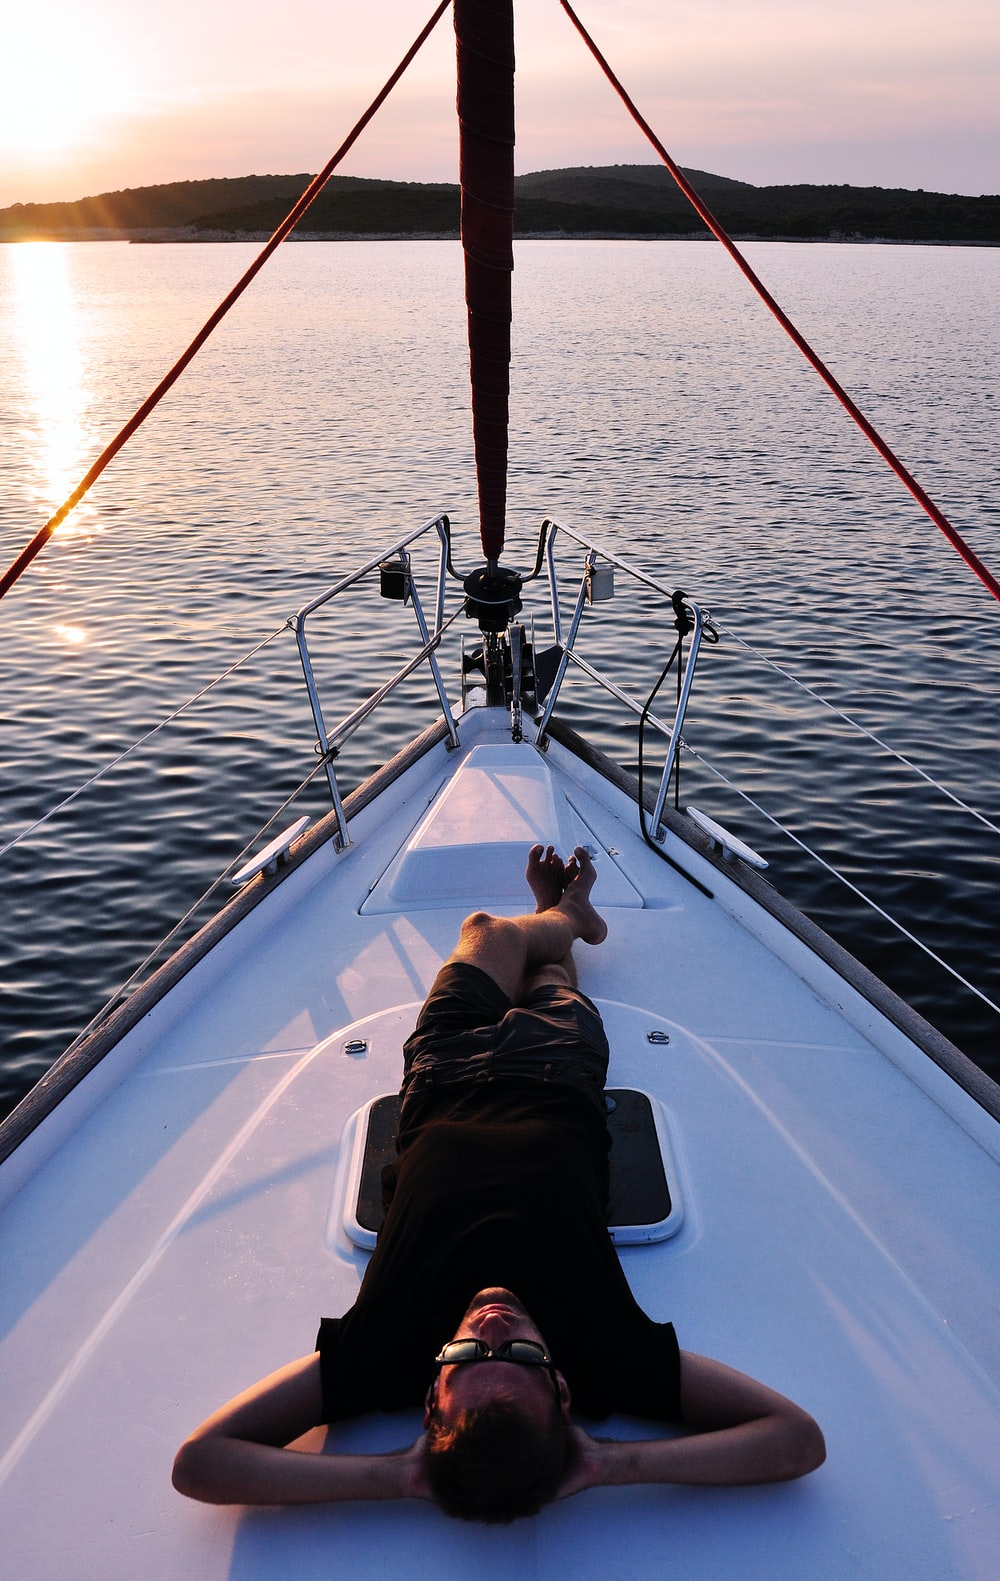 A man relaxing on his yacht on the calm water at Palinski Island at sunset